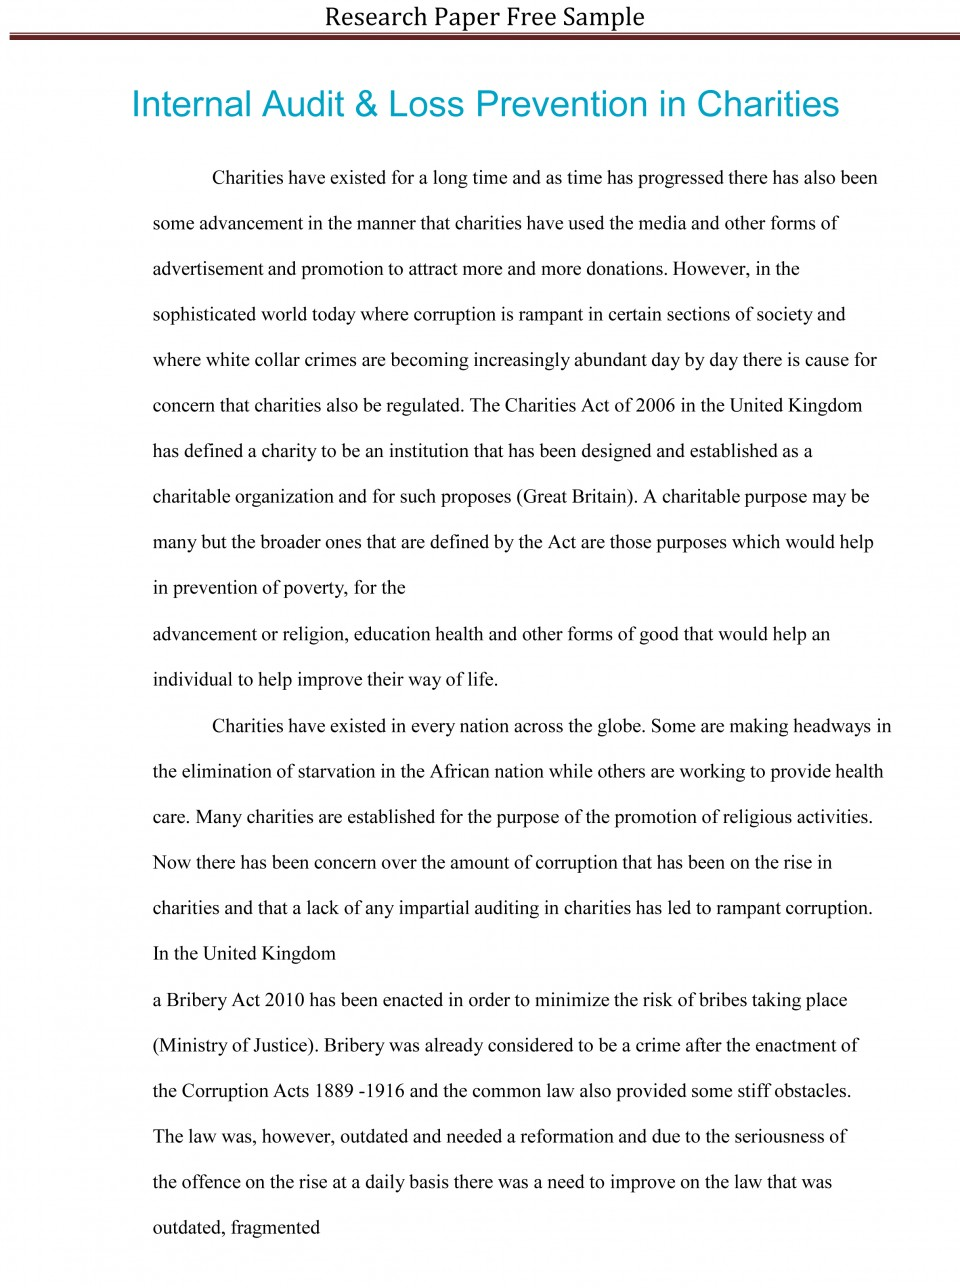 021 Research Paper Sample Essay Example High School Experience Dreaded Free 960